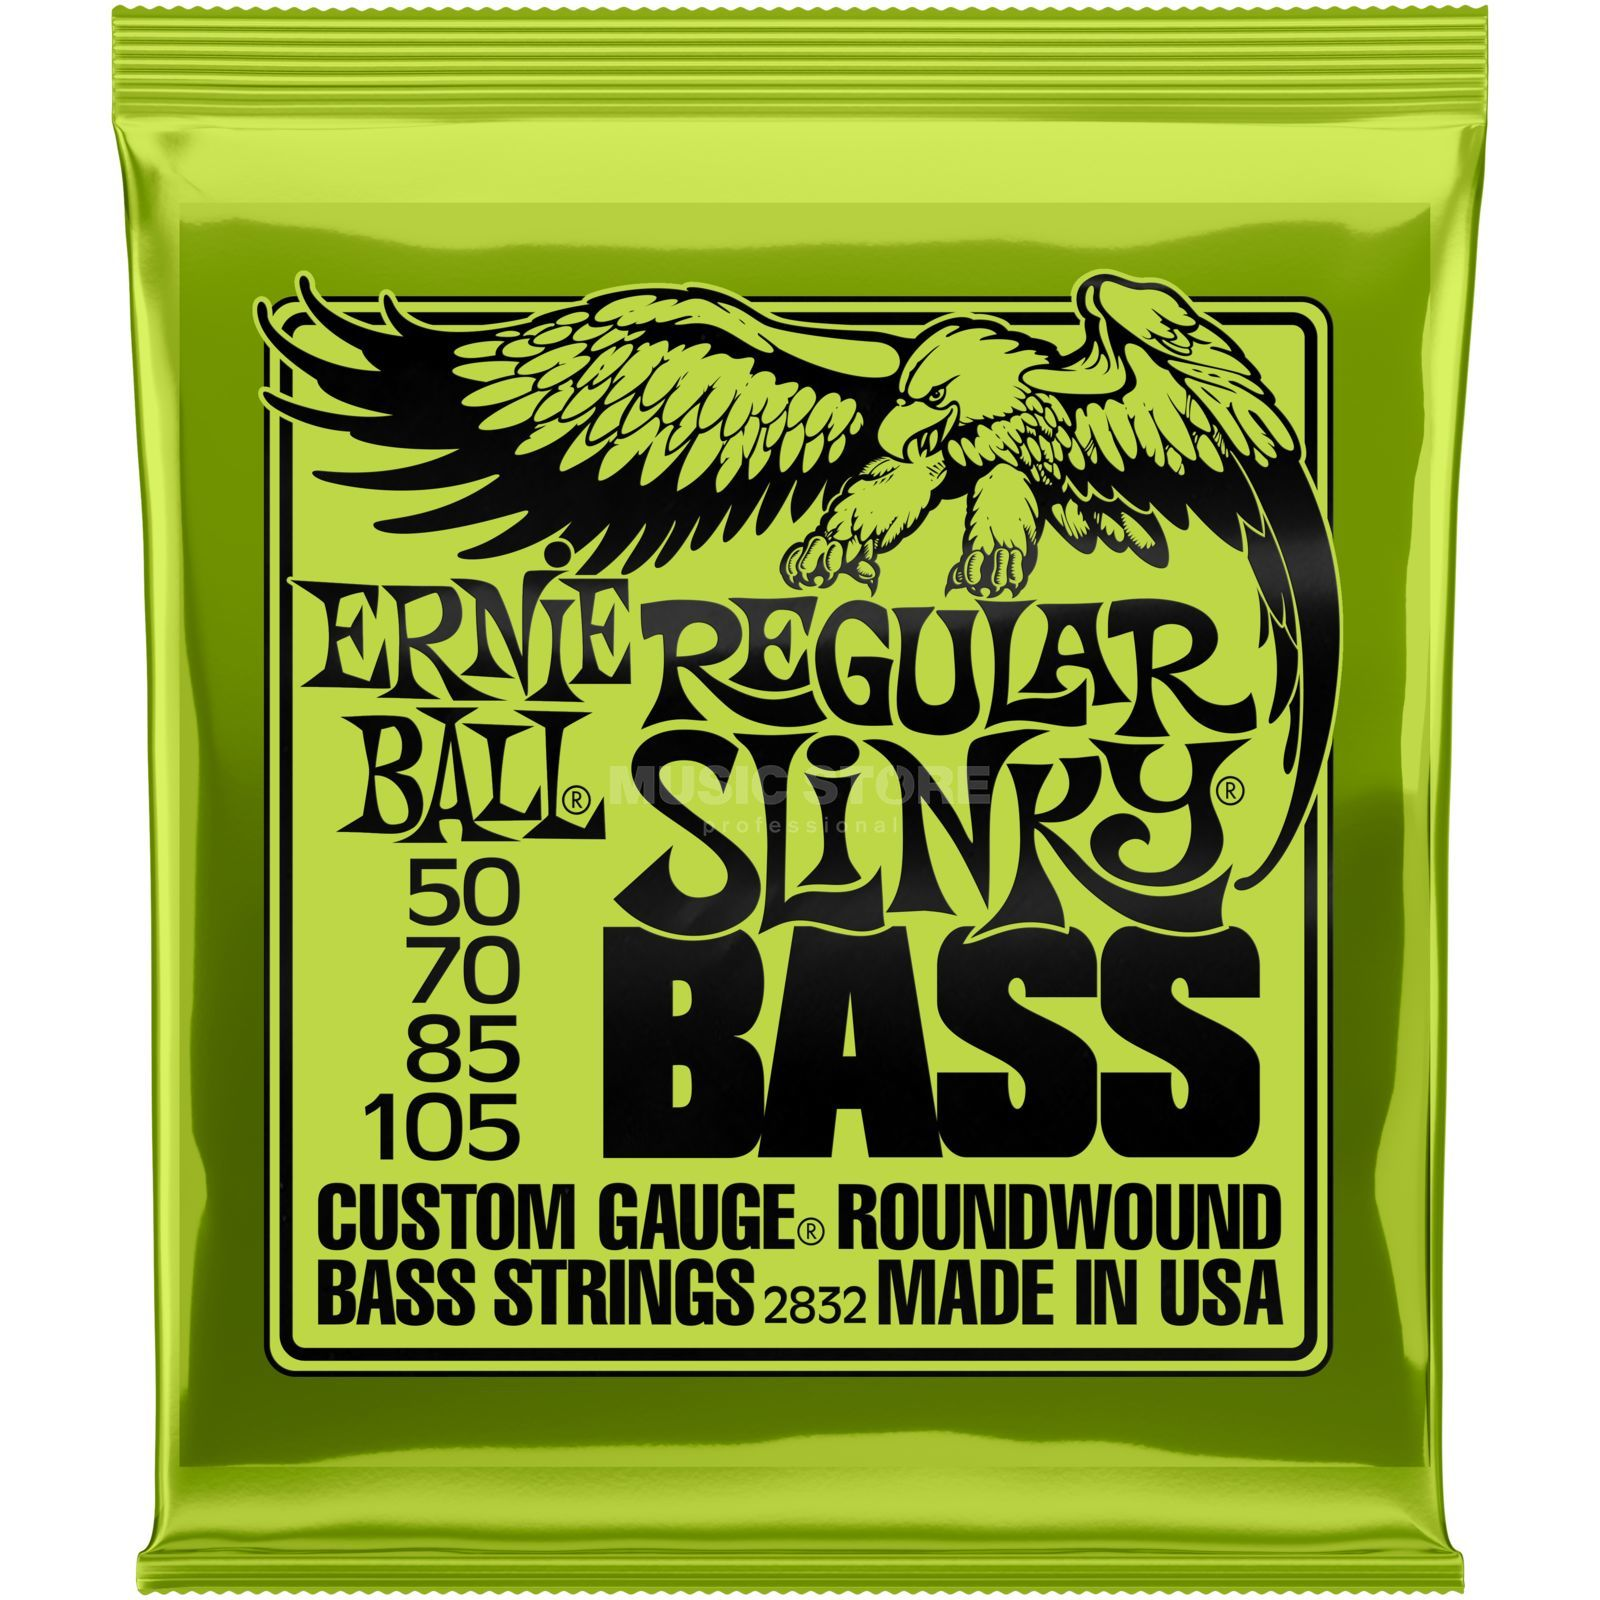 Ernie Ball Bass Strings Regular 50-105  Изображение товара